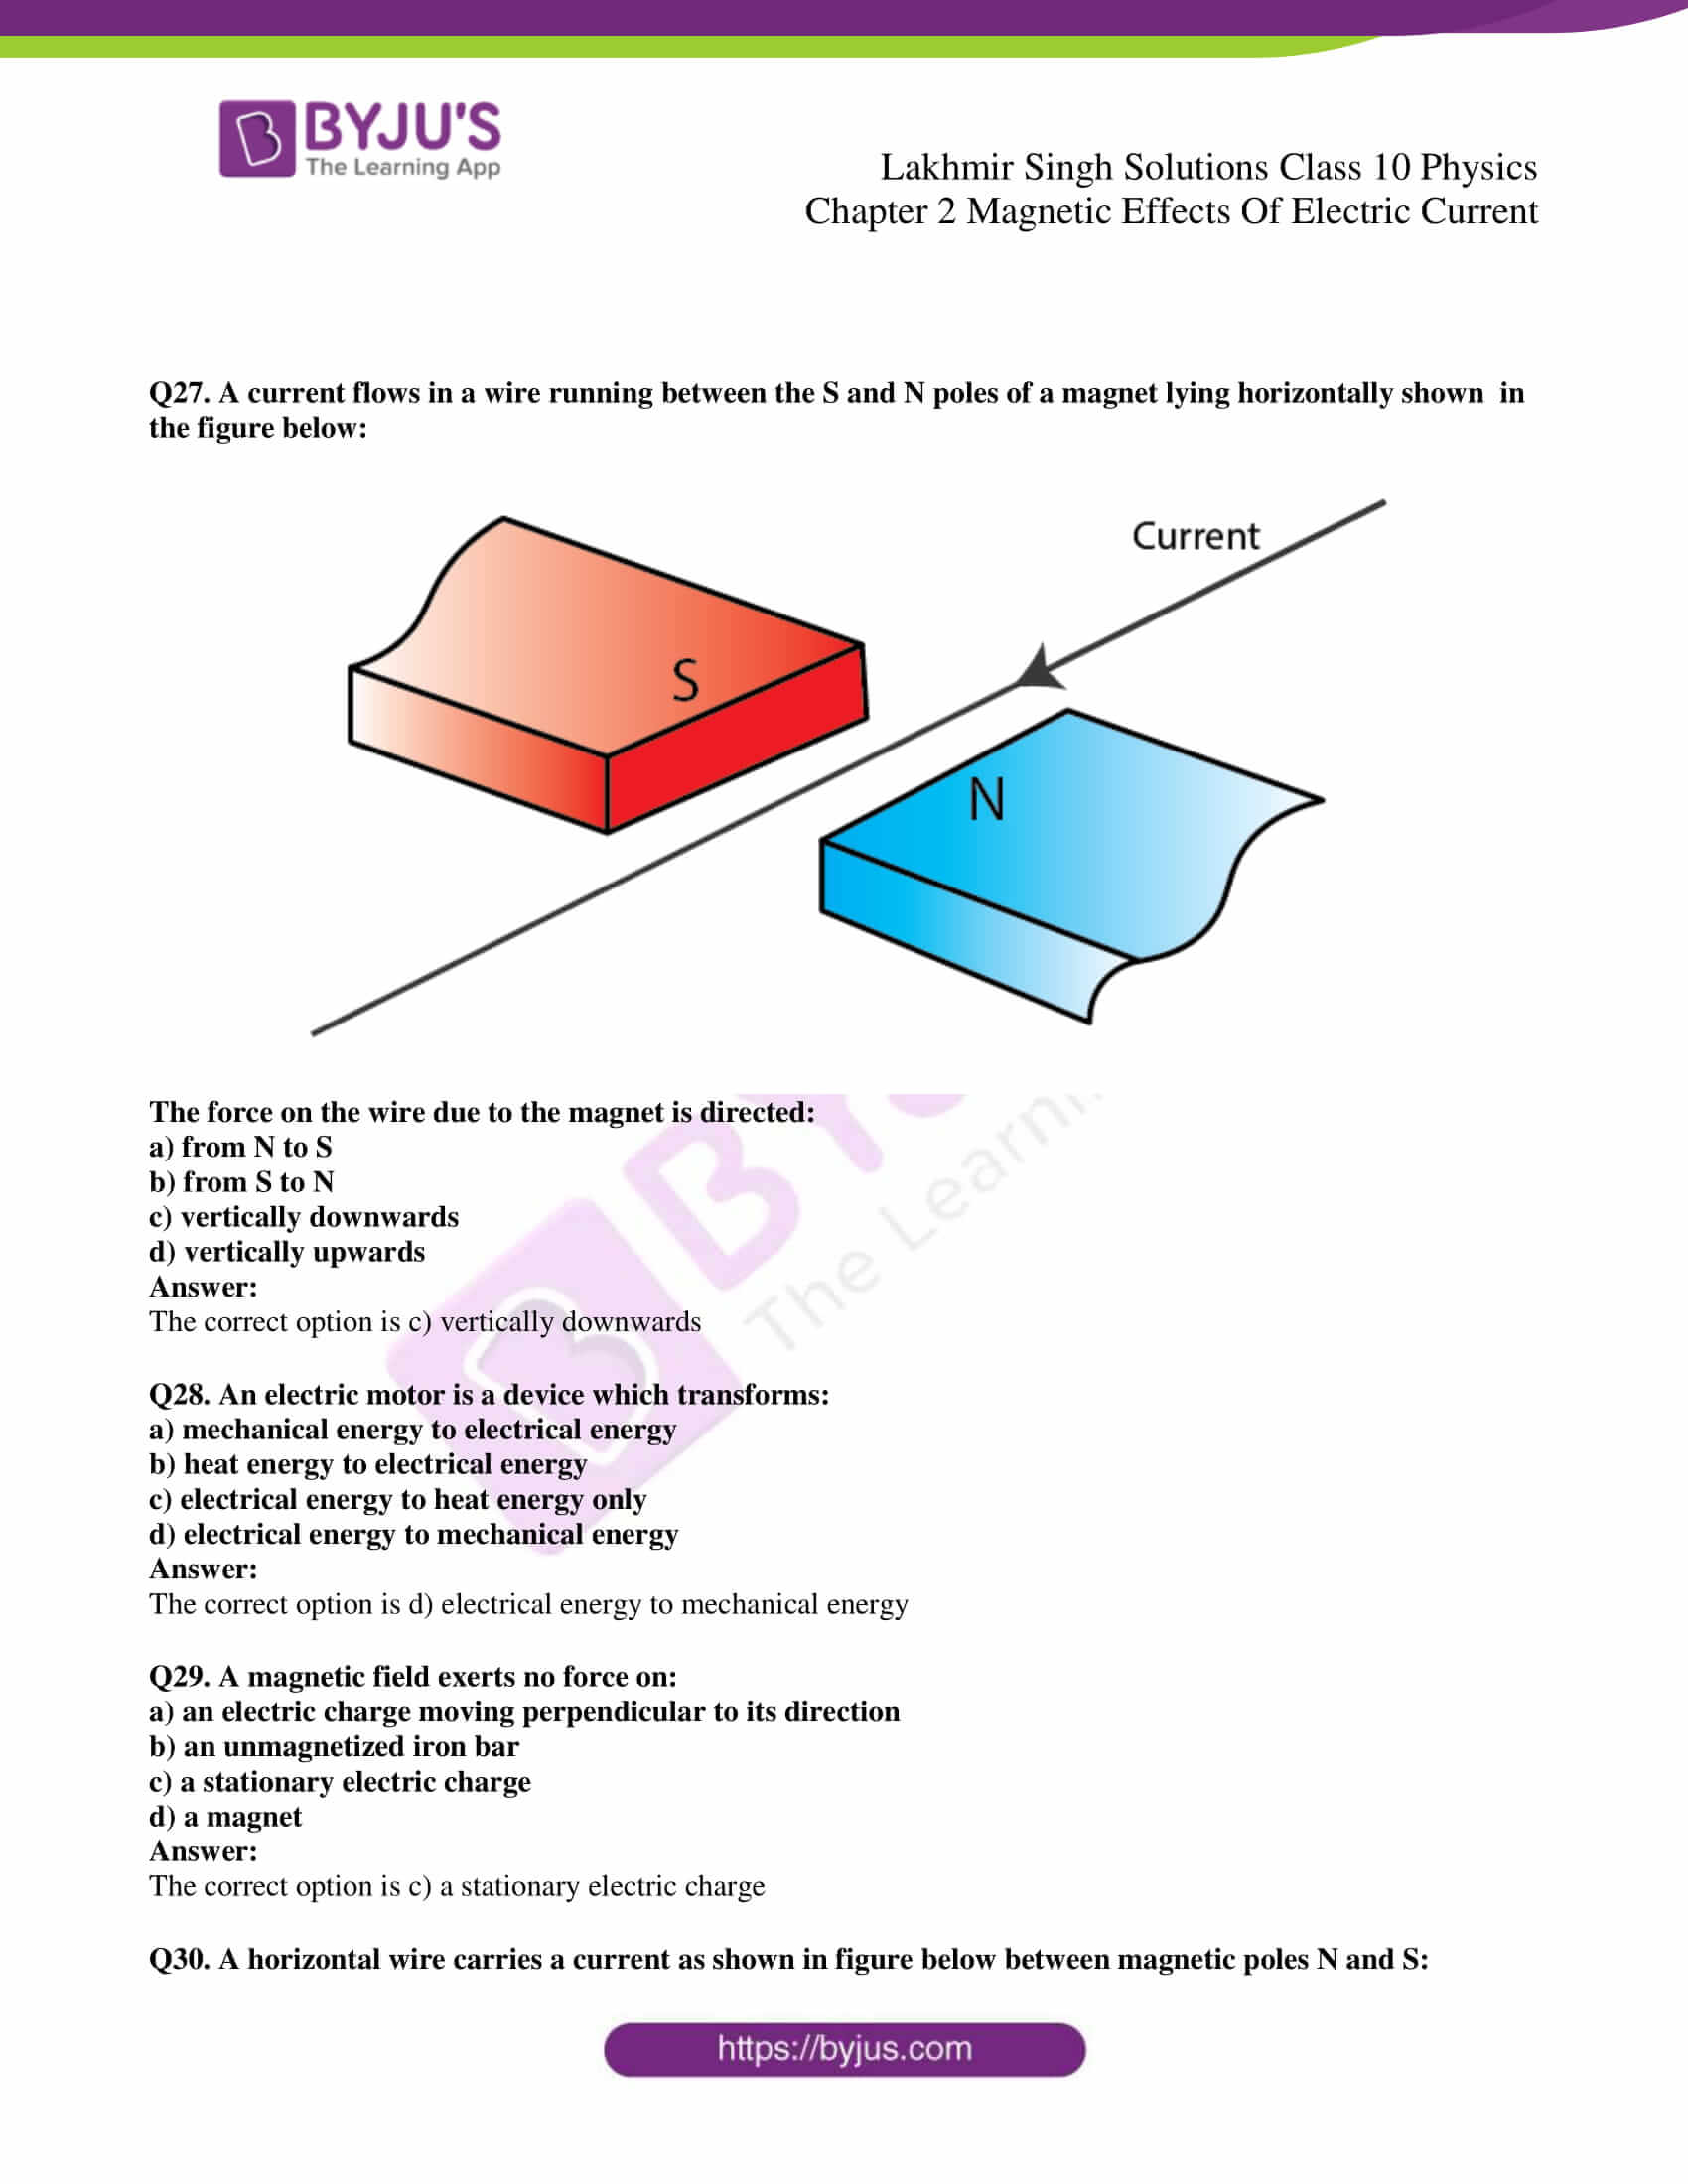 lakhmir singh sol class 10 physics chapter 2 25